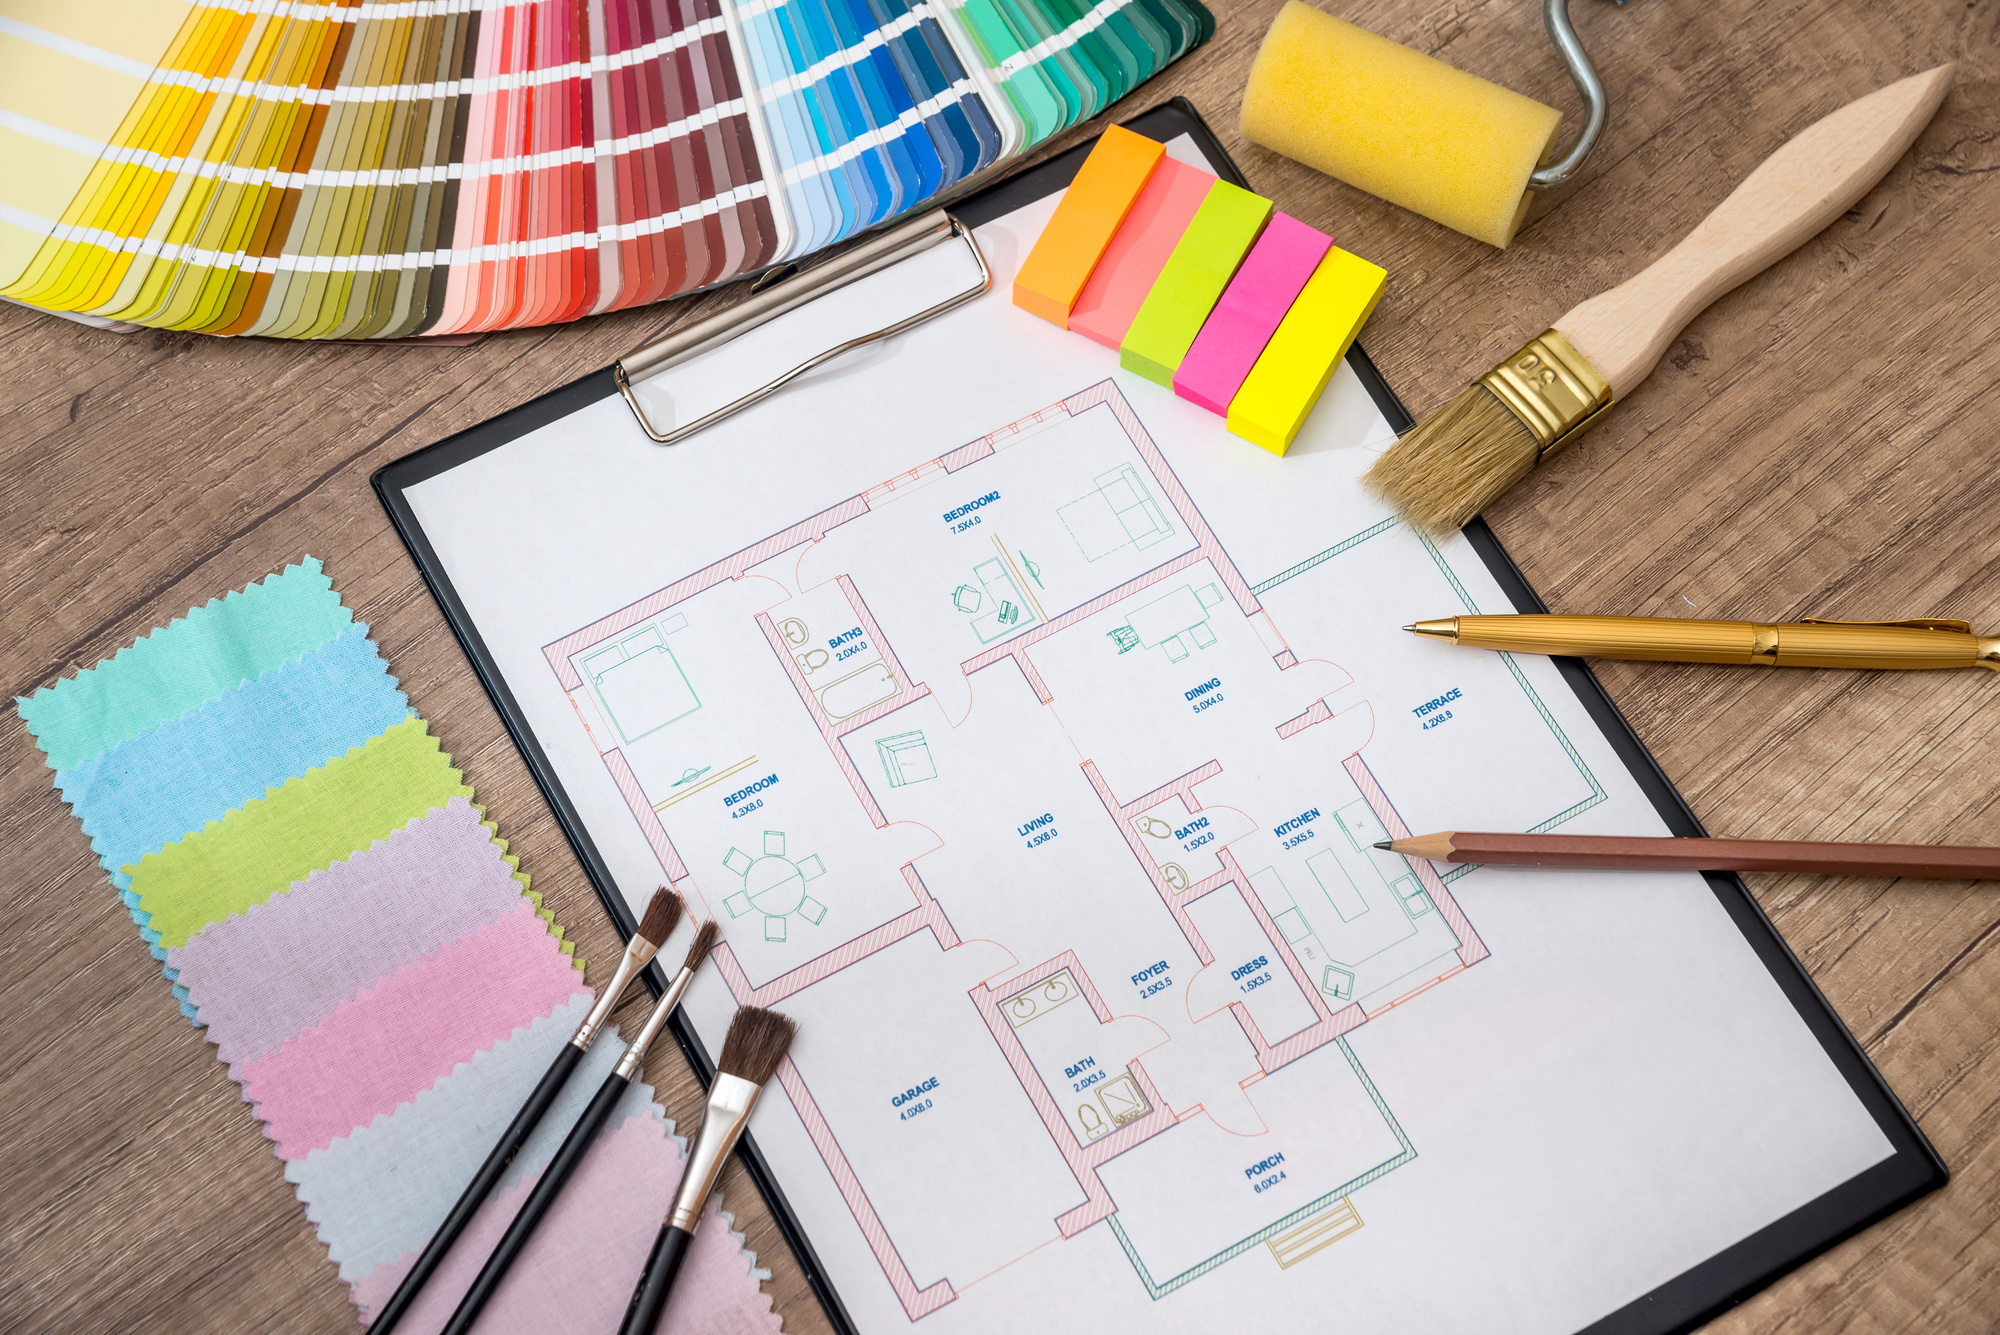 5 Things to Know About the Interior Design Career Path - Easyworknet